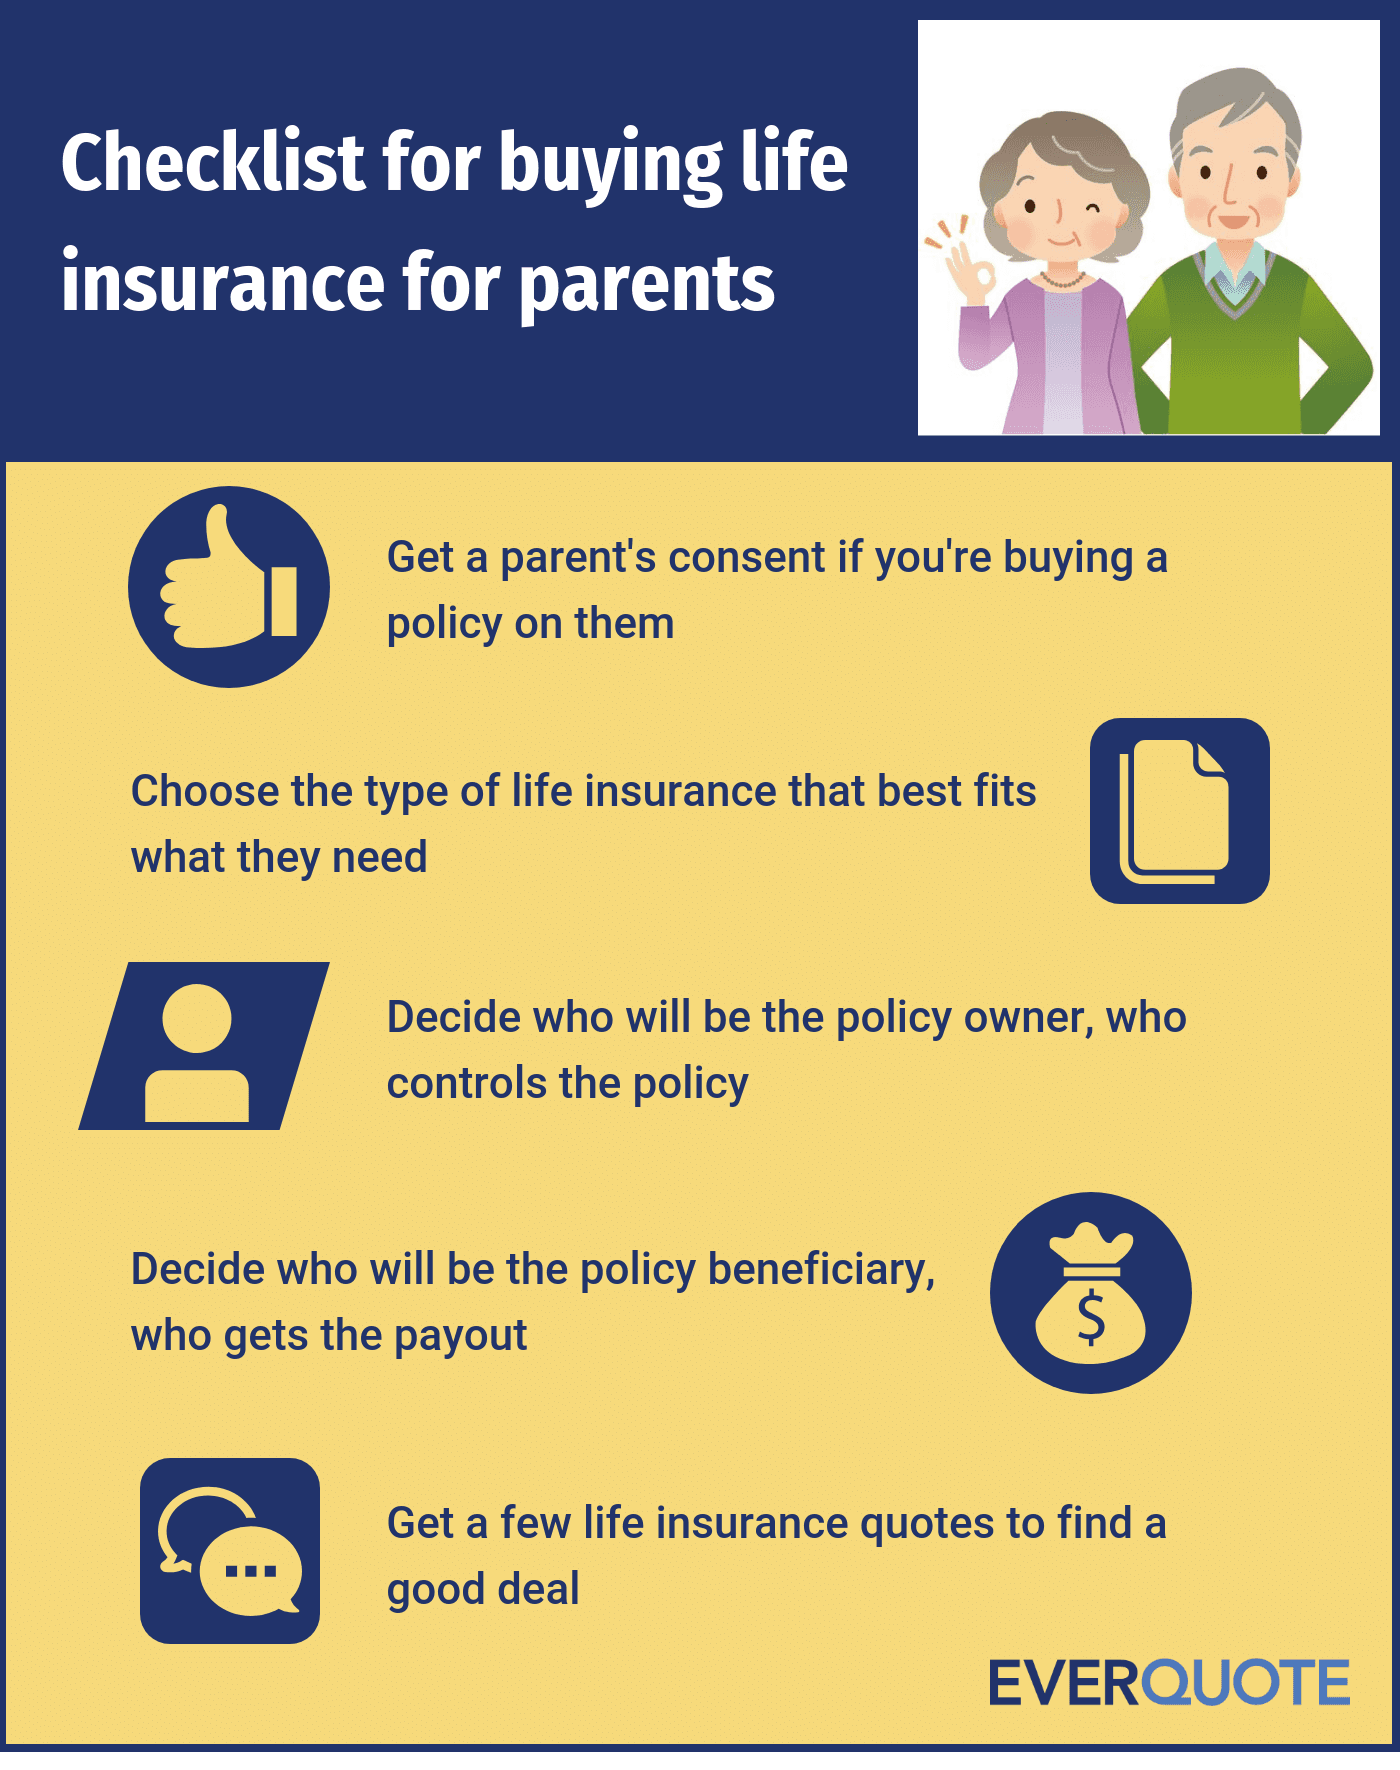 Checklist for buying life insurance for parents